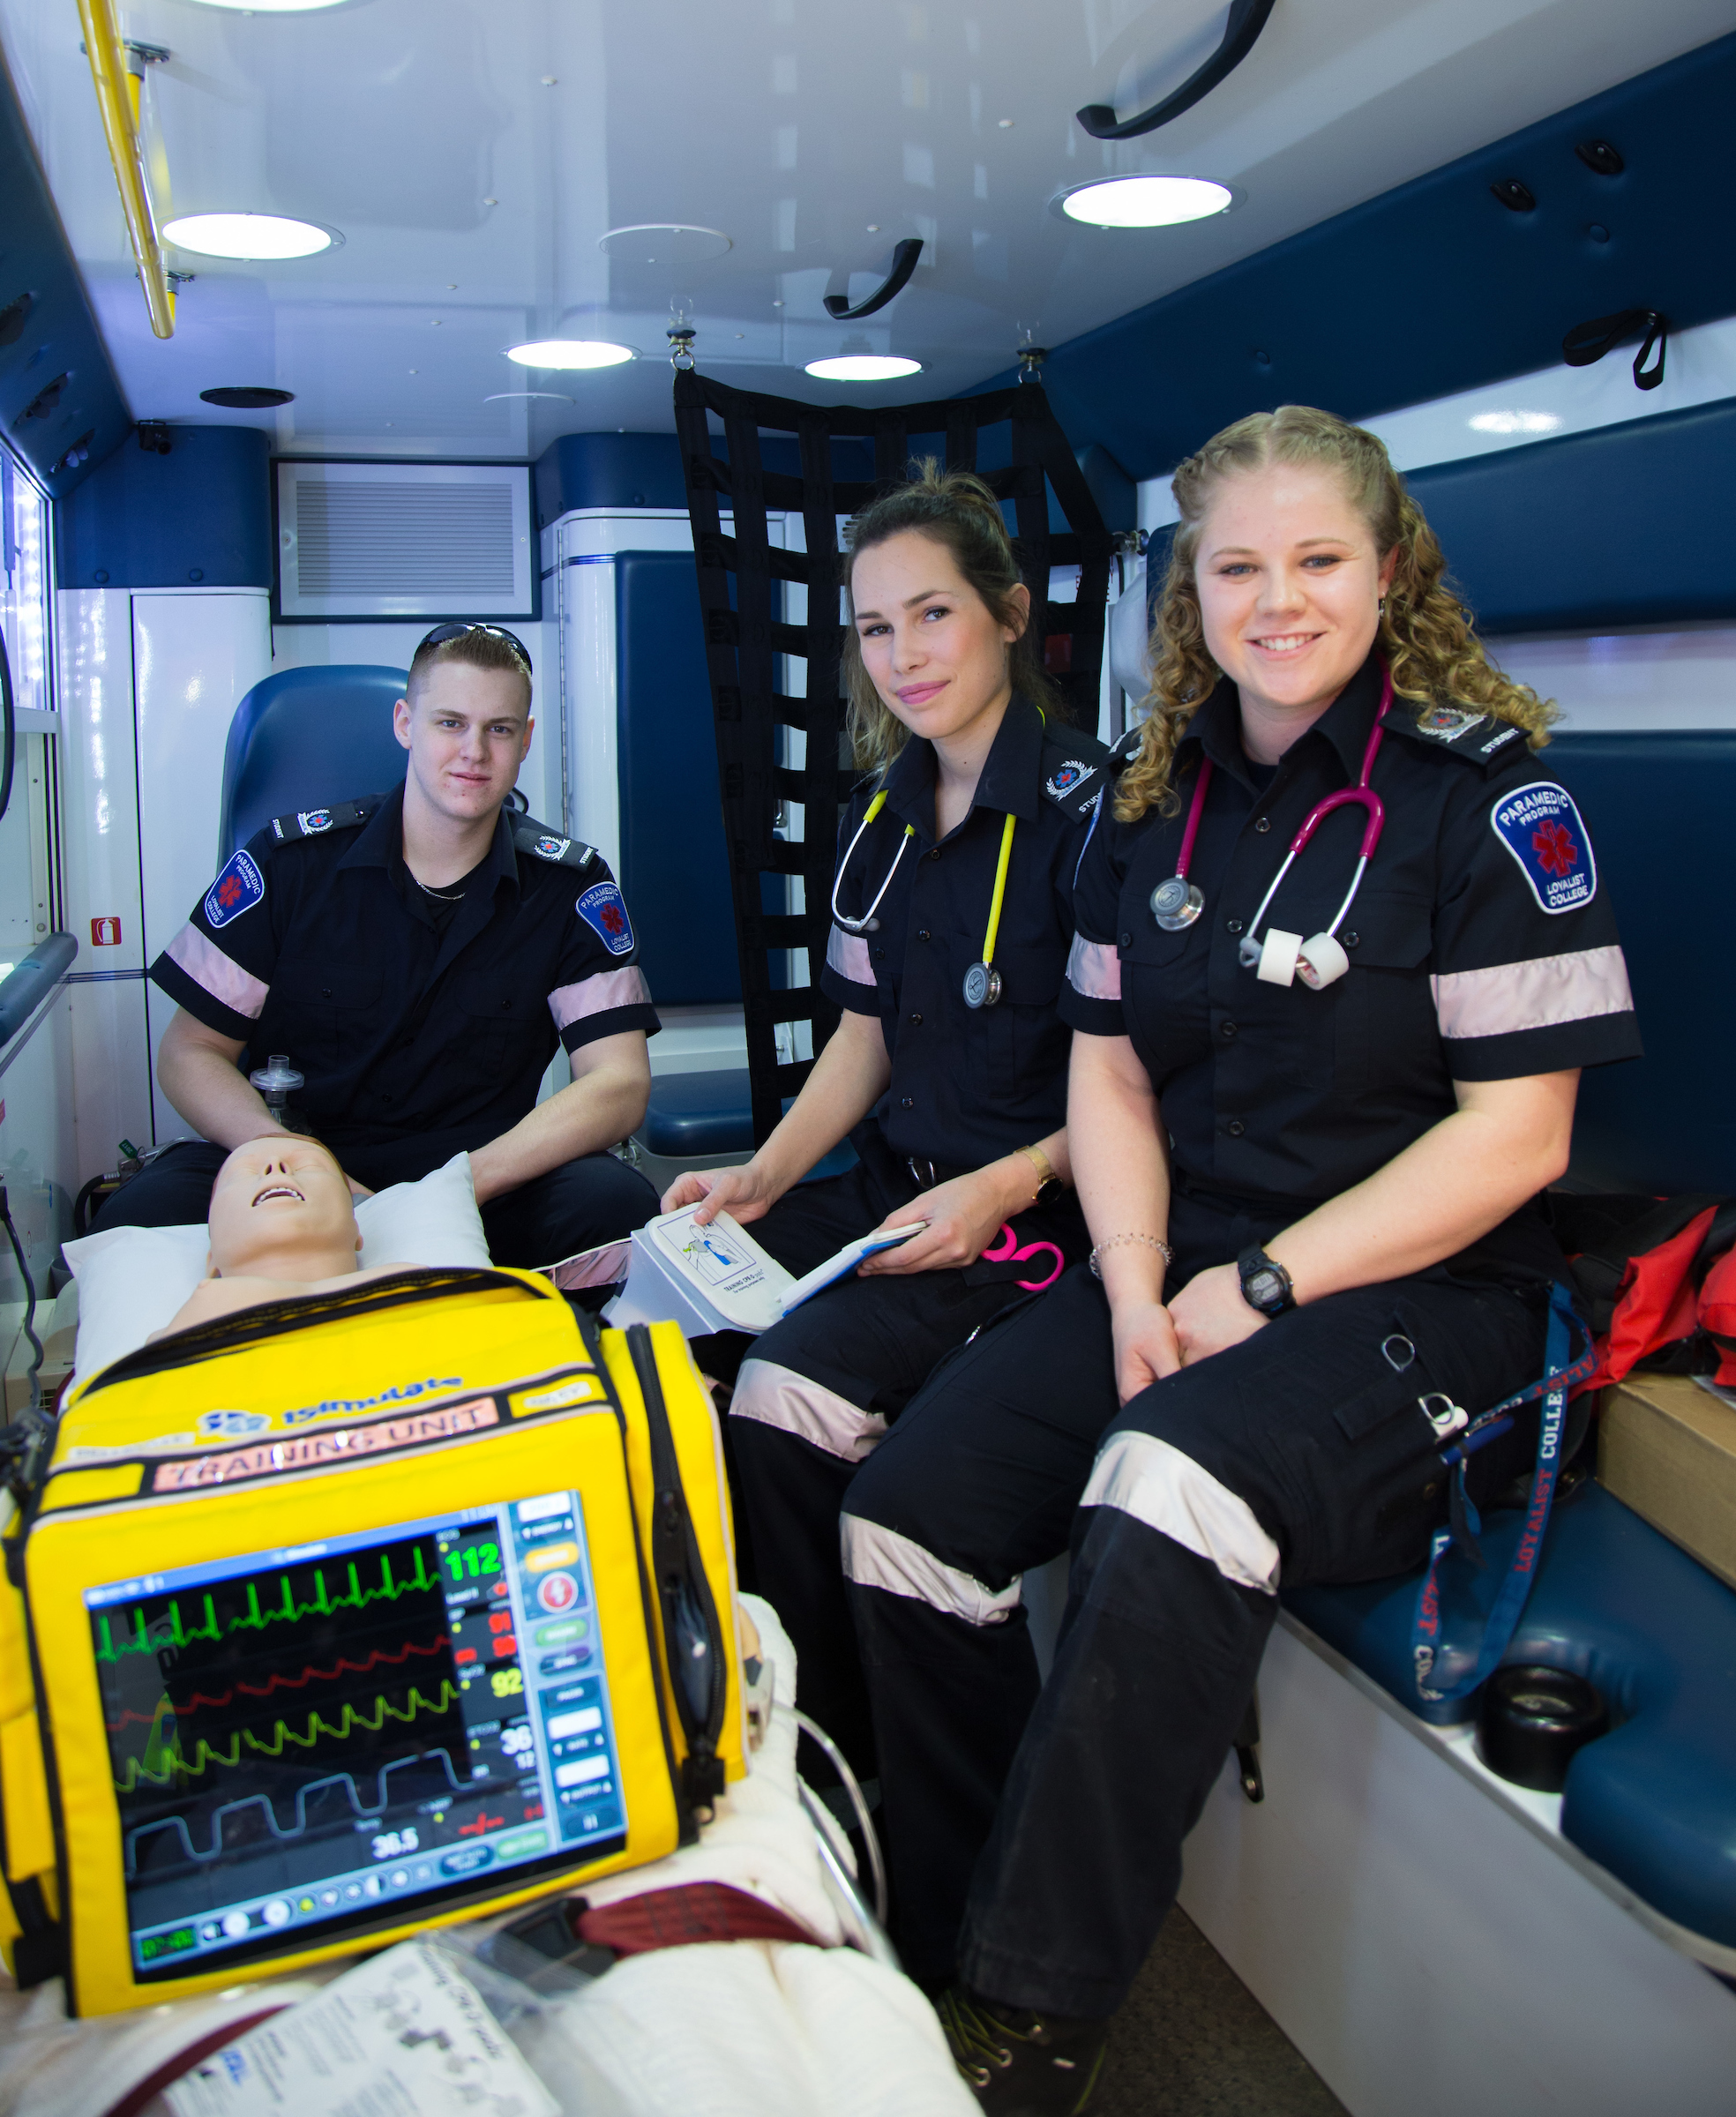 Three paramedics pose in the back of an ambulance beside a stretcher that holds their equipment.